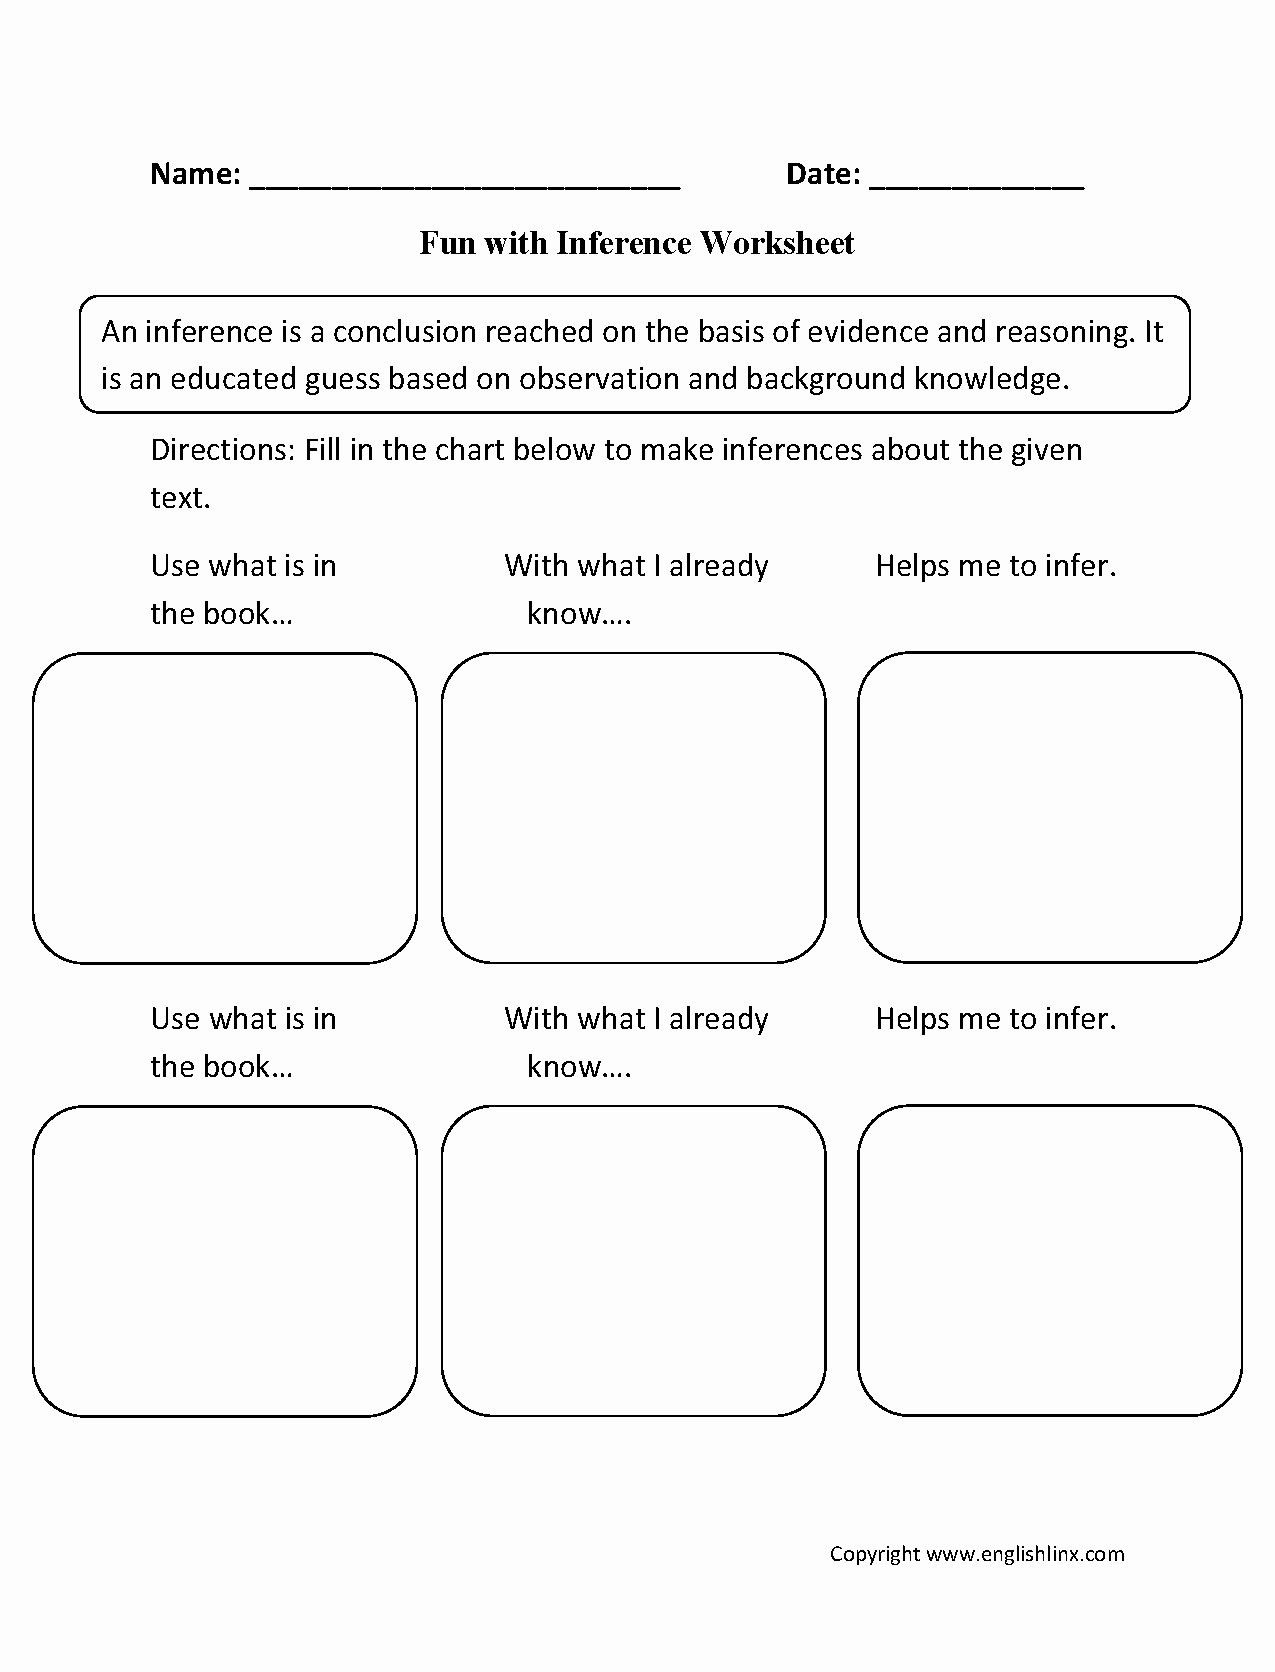 Simple And Compound Interest Worksheet Answers